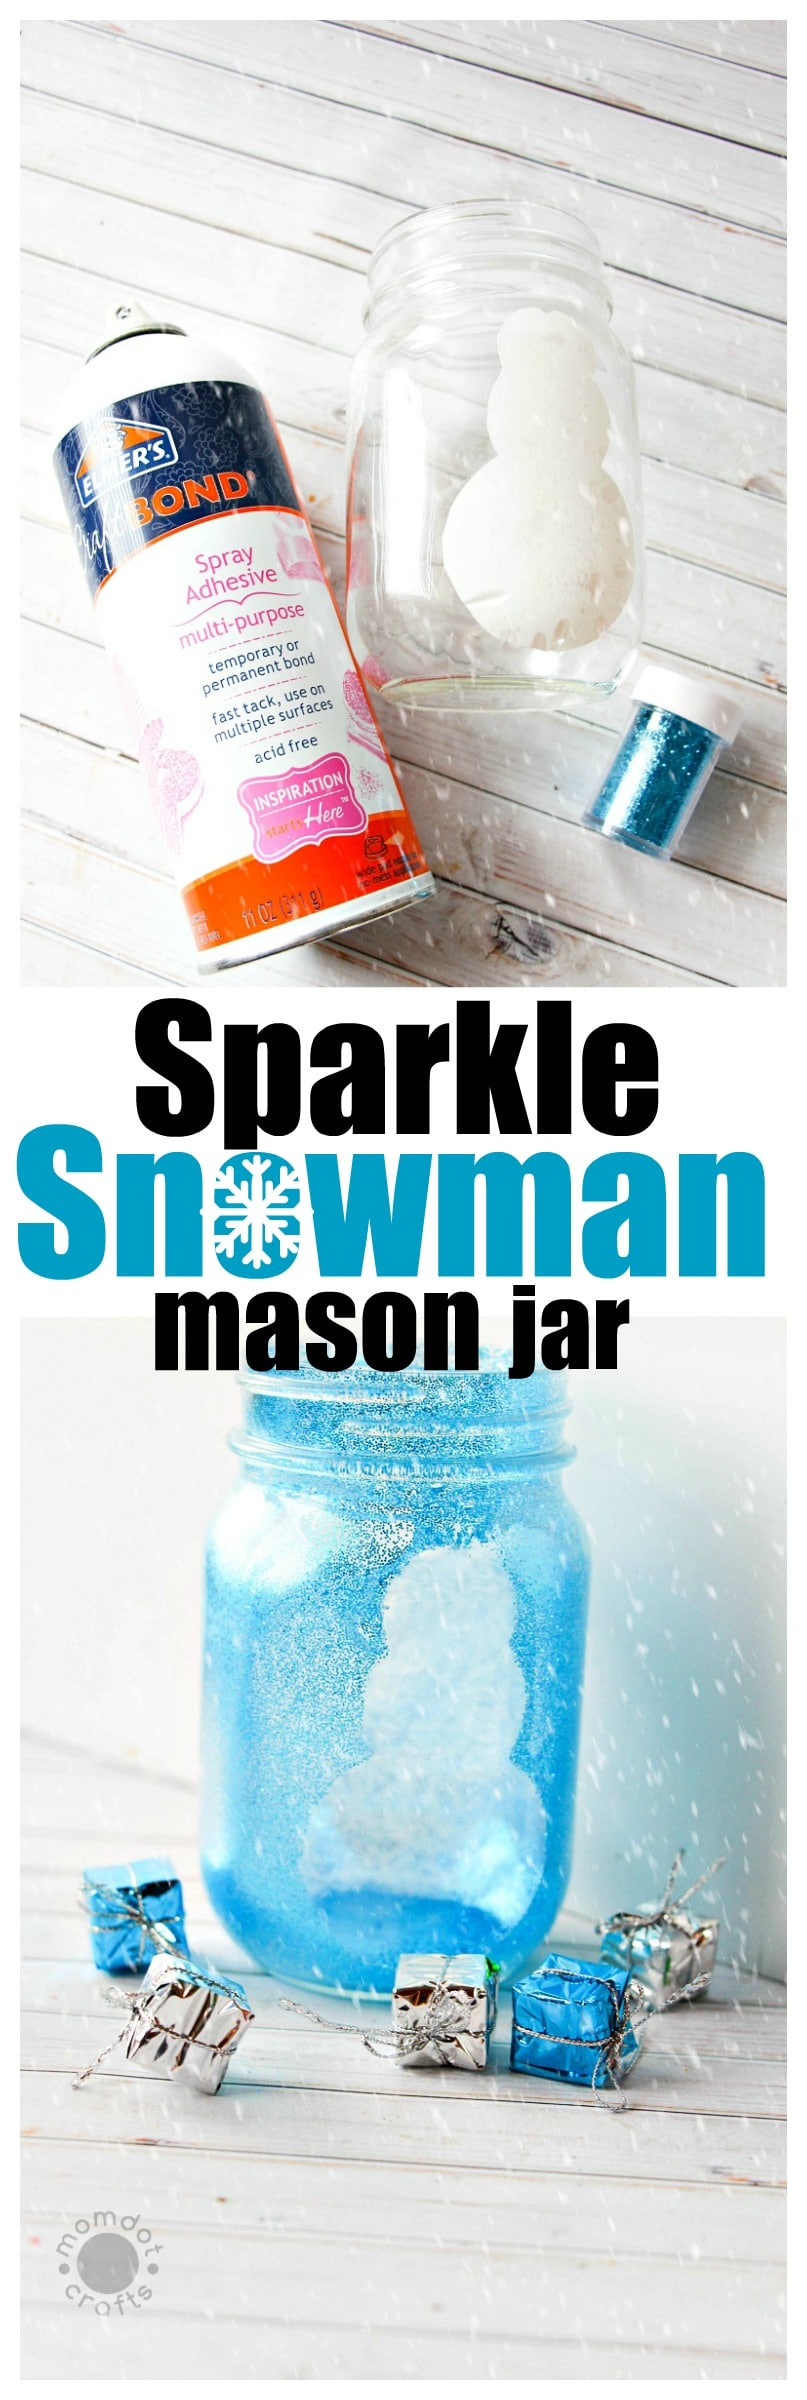 snowman mason jar crafts - sparkly like snow, create a mason jar centerpiece that is totally cute! Easy DIY instructions